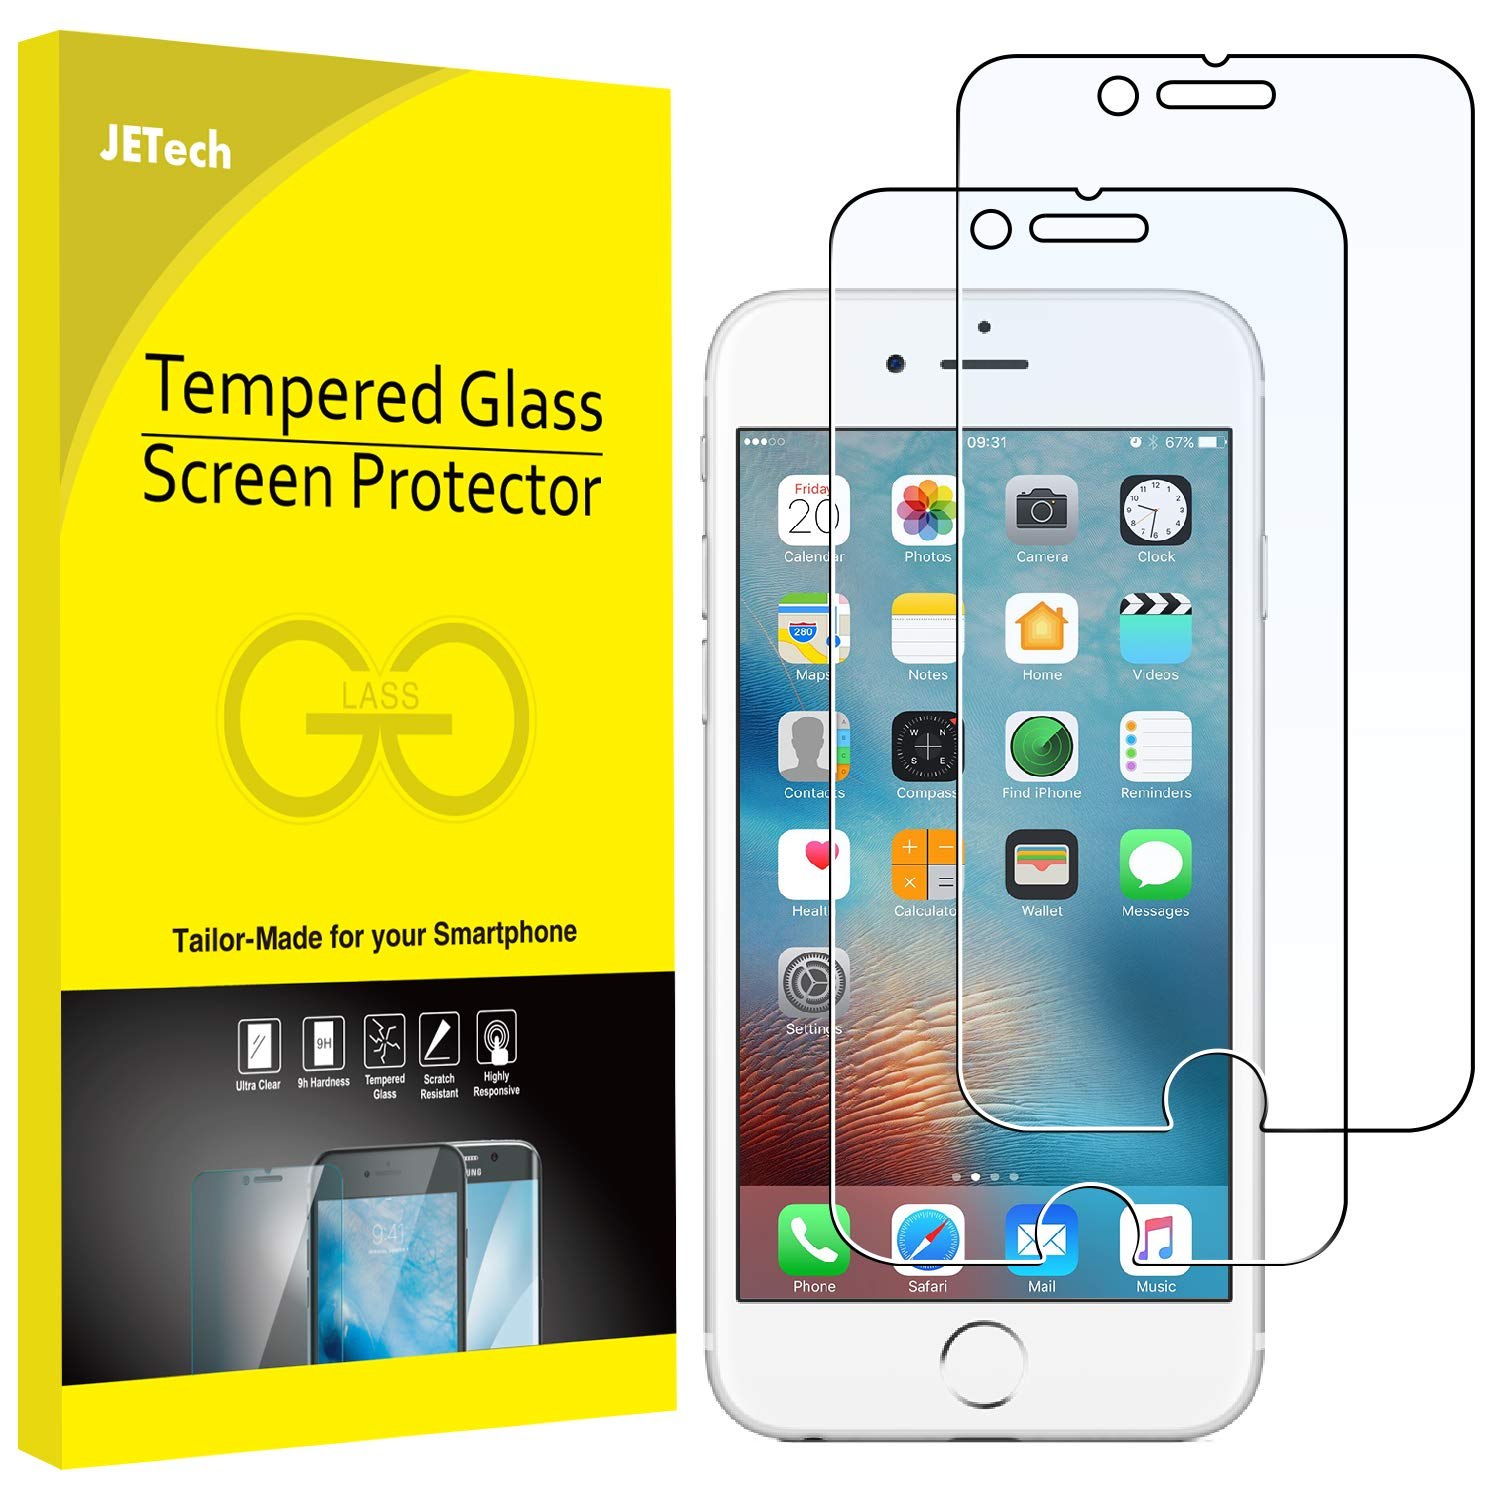 JETech Screen Protector for Apple iPhone 6 Plus and iPhone 6s Plus,  5 5-Inch, Tempered Glass Film, 2-Pack